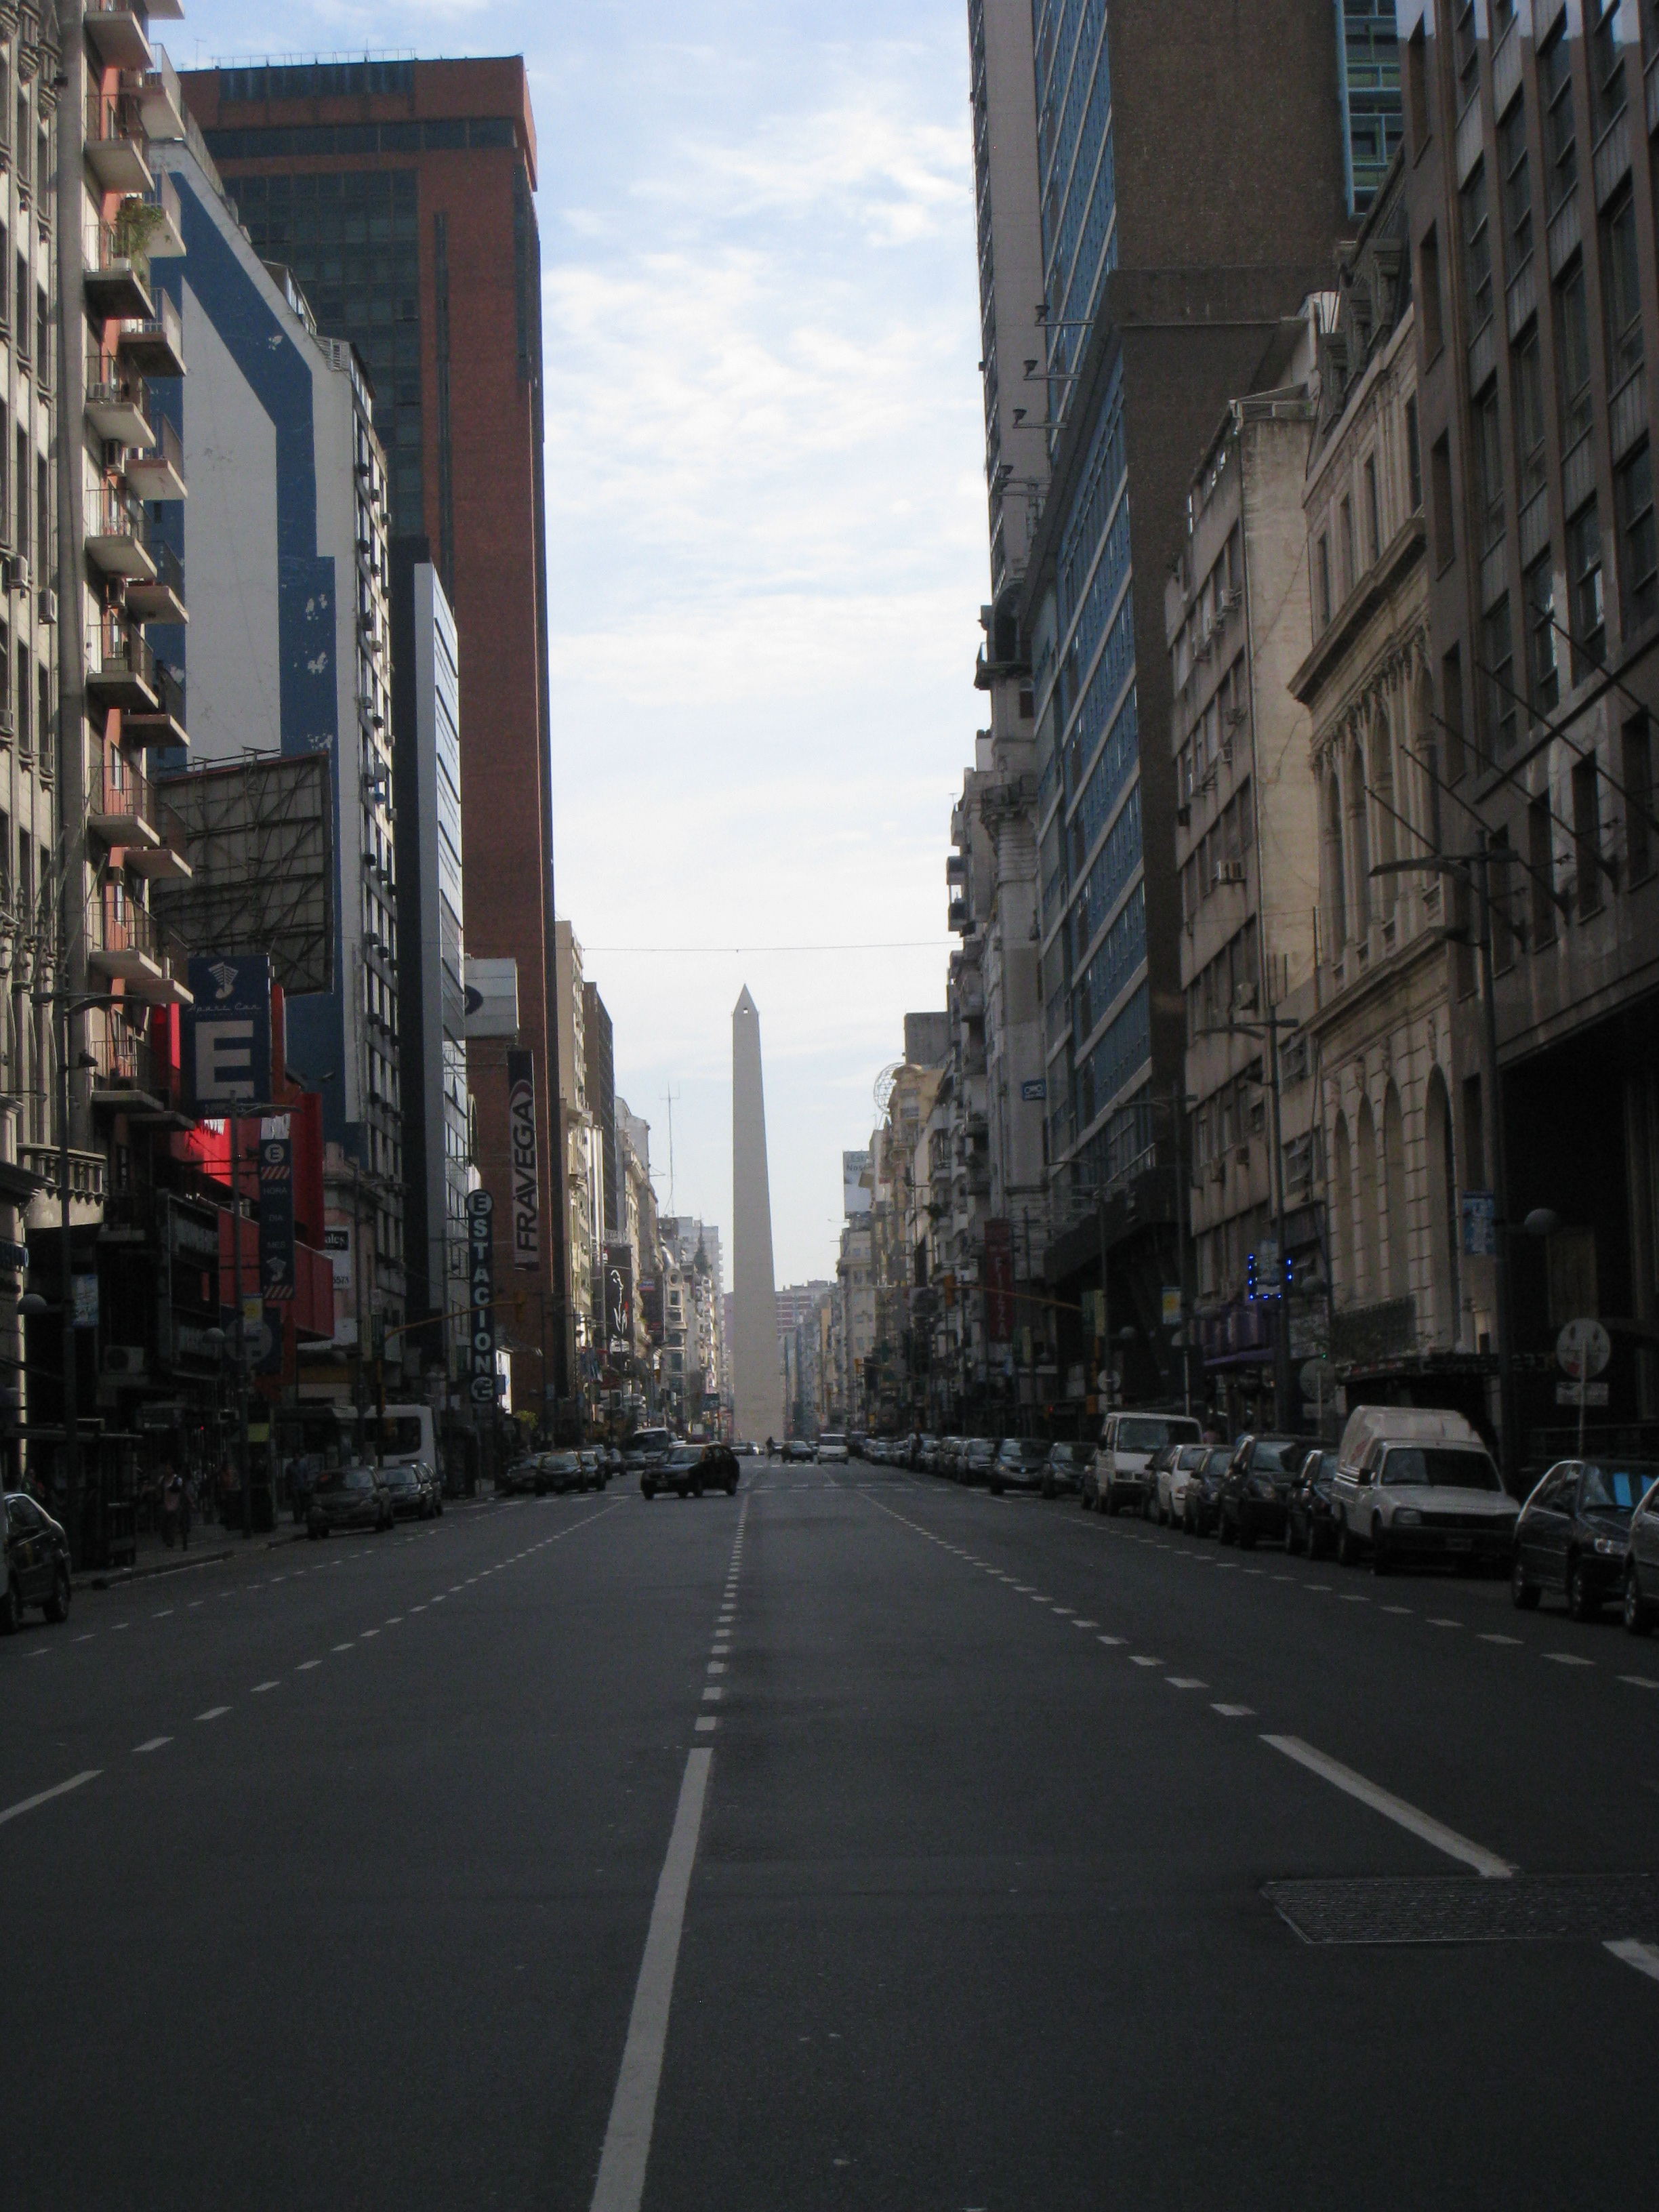 Buenos Aires, pictures of Buenos Aires, photos of Buenos Aires, Buenos Aires pics, the obelisk Buenos Aires